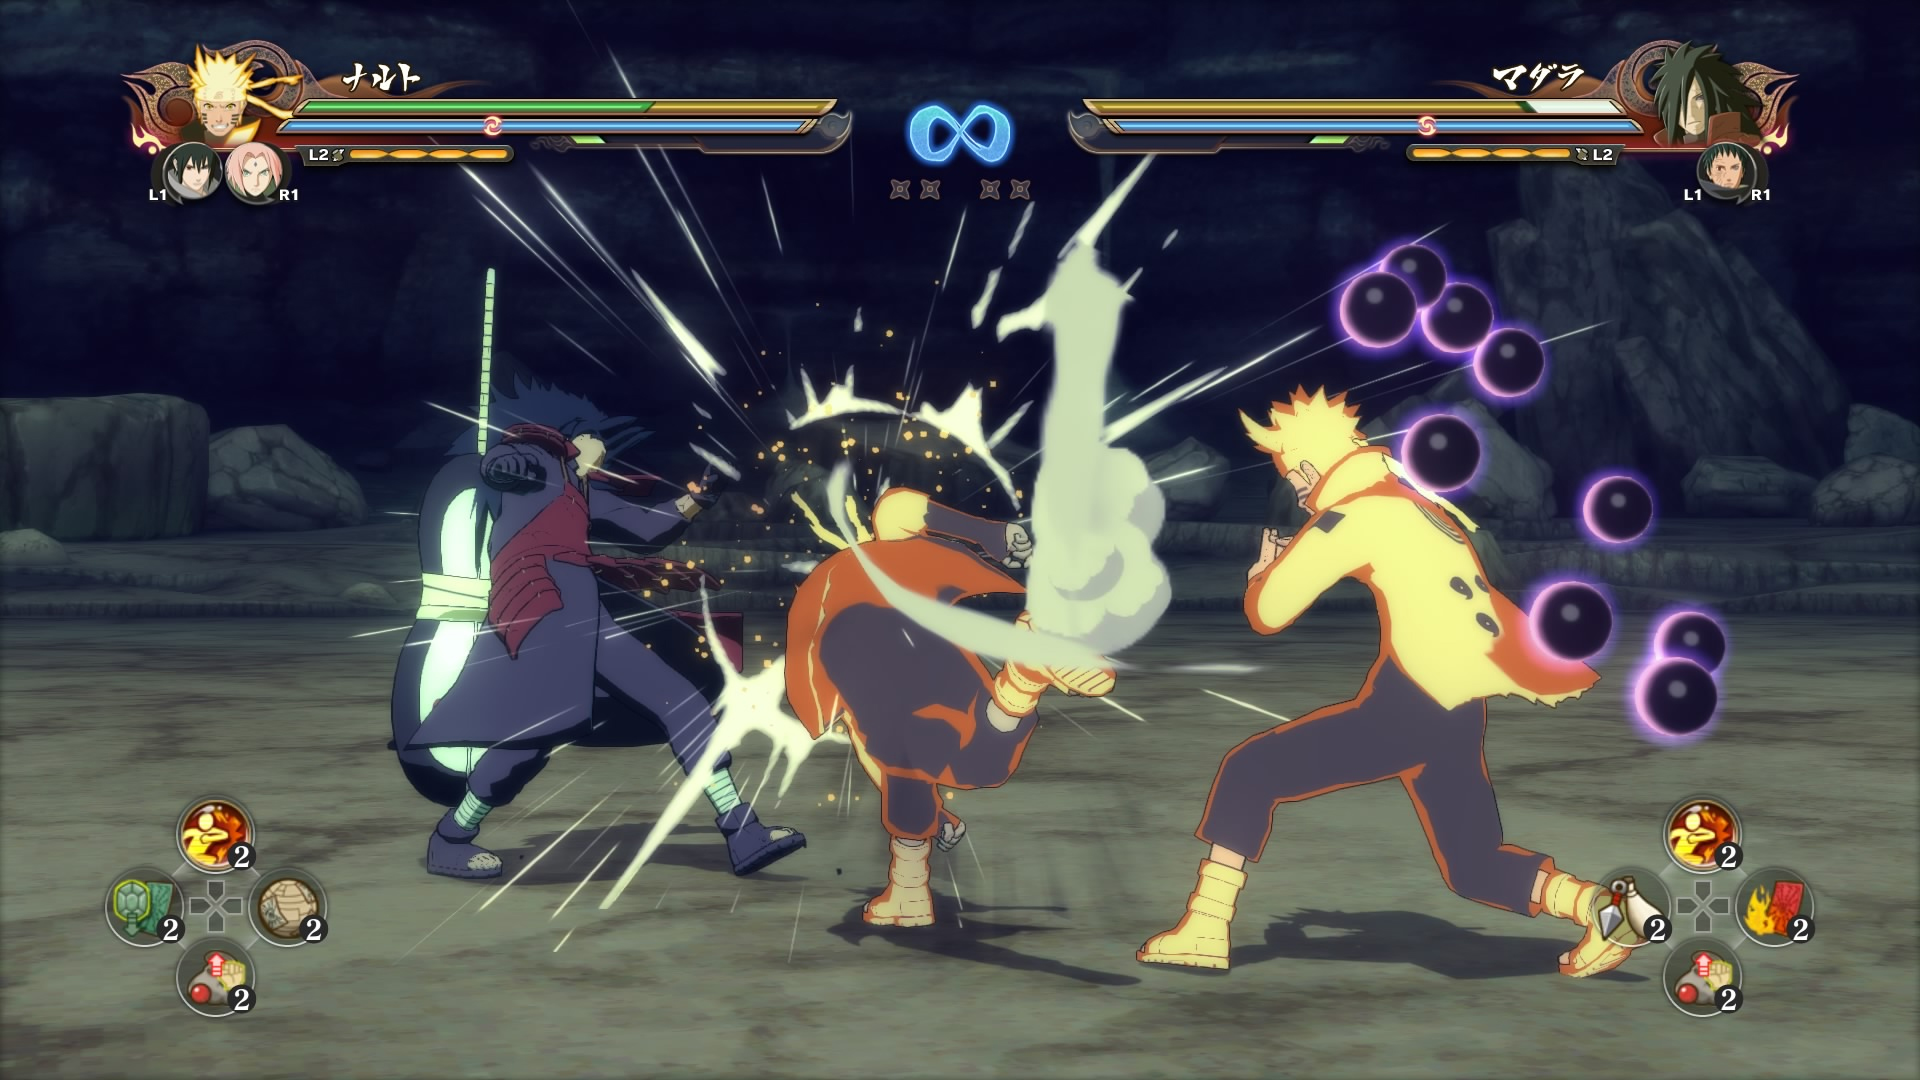 New Naruto Shippuden: Ultimate Ninja Storm 4 Gameplay Details